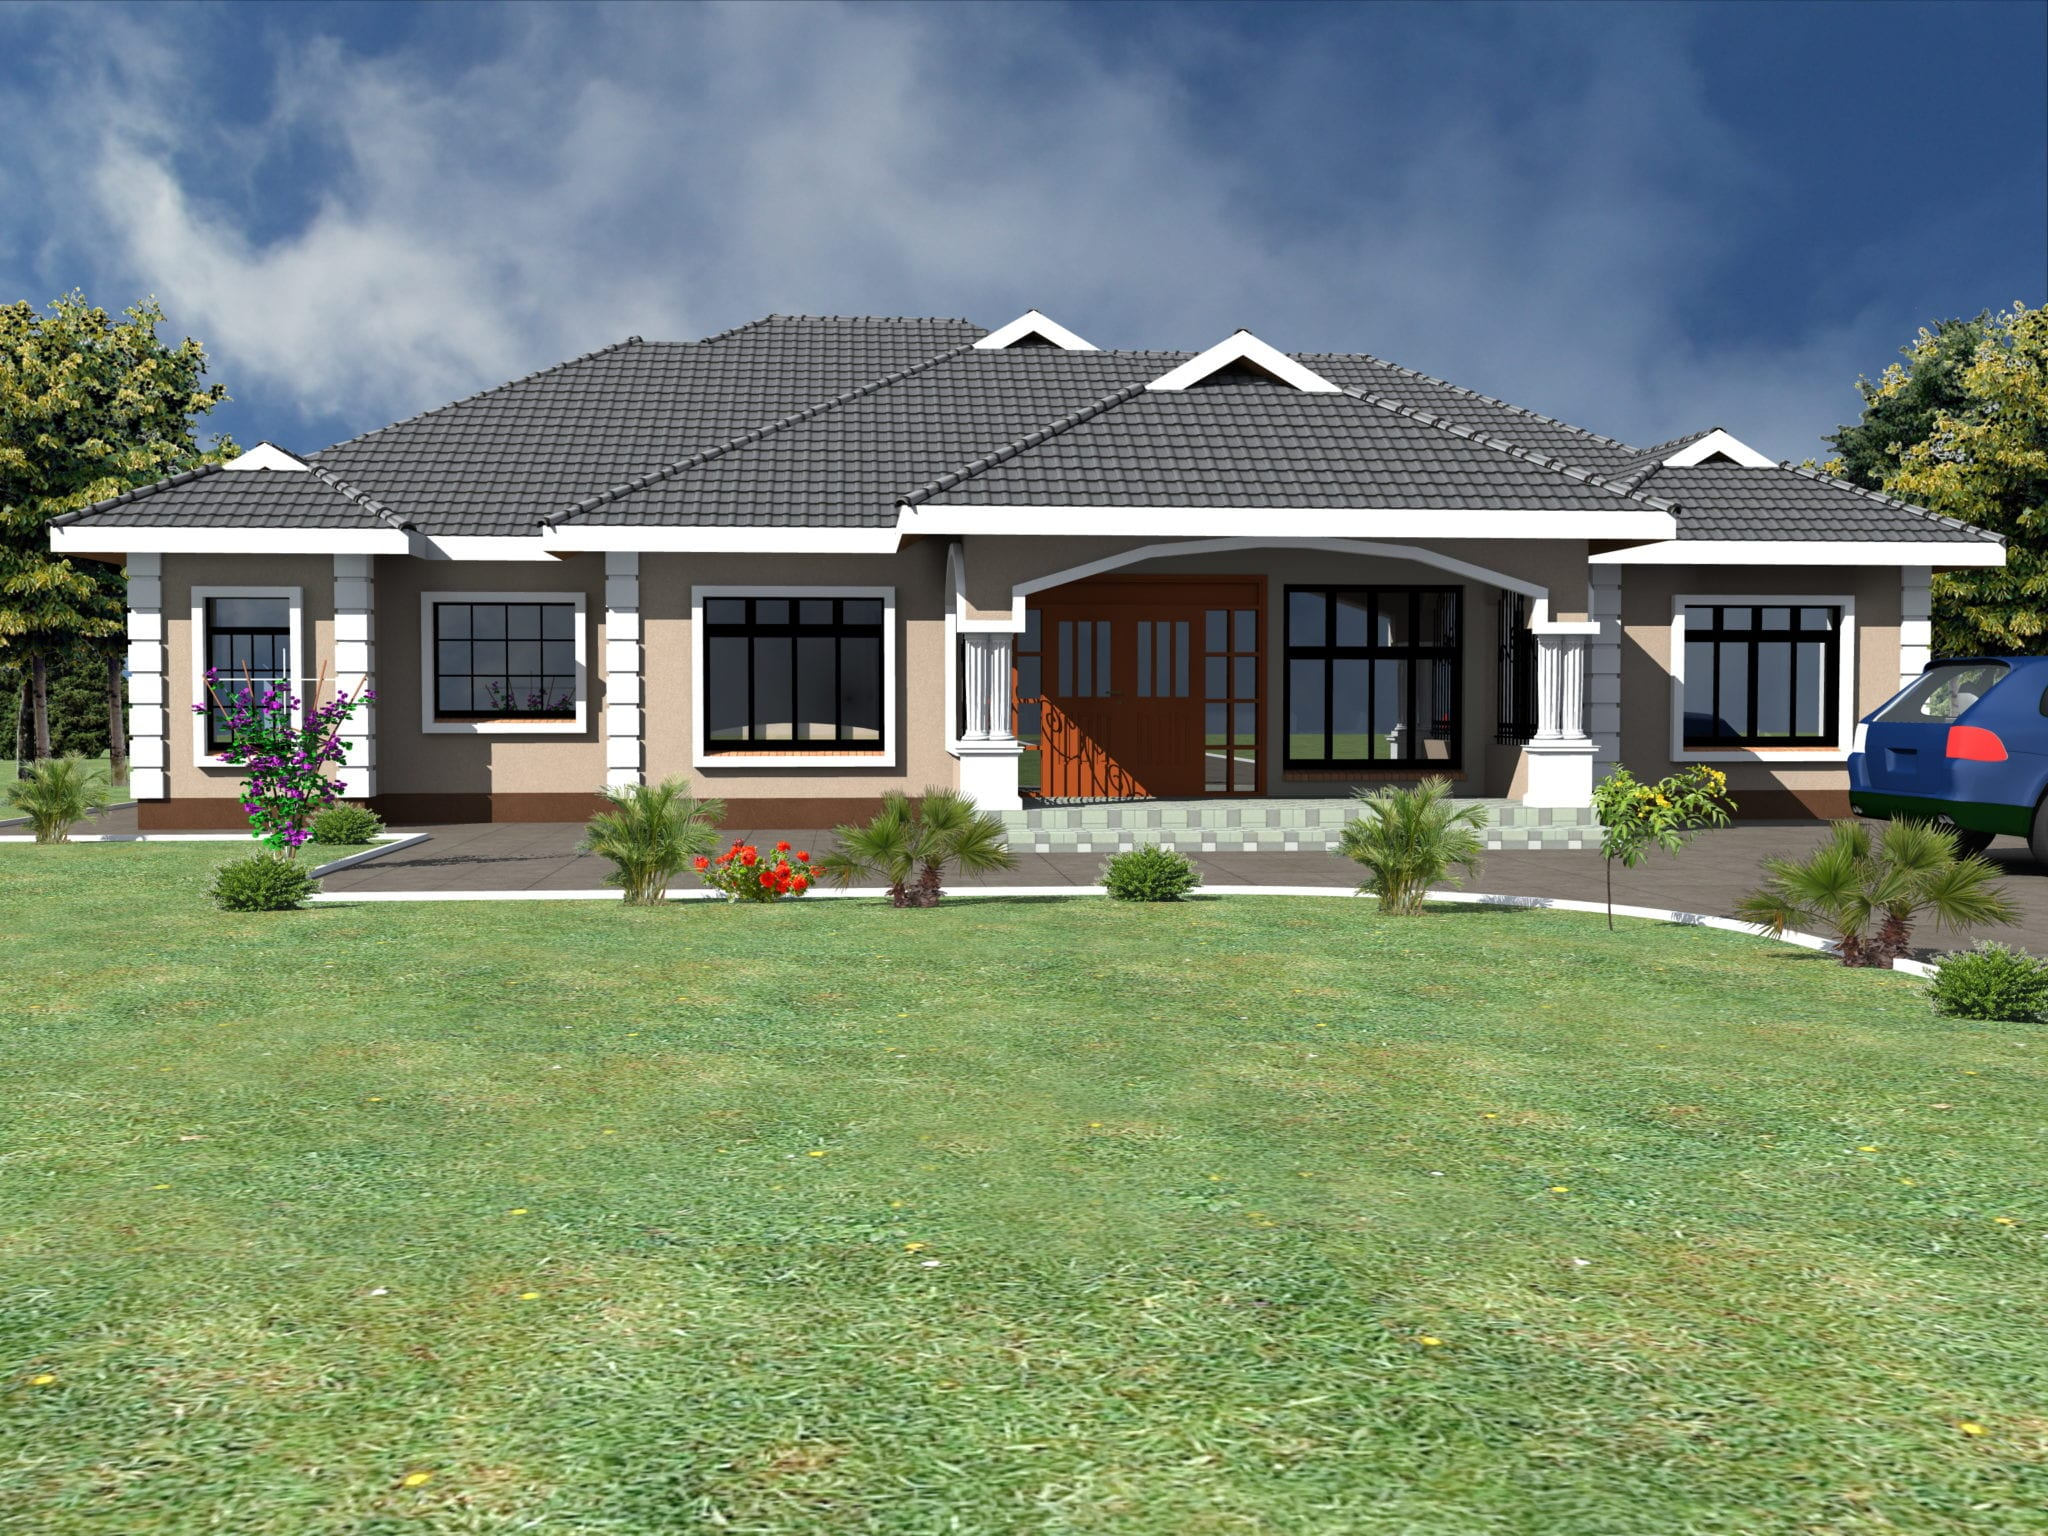 Latest 4 Bedroom House Plans Designs | HPD Consult on 1989 house plans, cob house plans, basement house plans, 10 bedroom house plans, 2 flat bedroom house plans, 9 bedroom house plans, 6 bedroom house plans, 8 bedroom house plans, luxury 5 bedroom house plans, 13 bedroom house plans, barn house plans, small house plans, great room house plans, simple house plans, 2 bedroom 2 bath house plans, floor plans, shed house plans, modern house plans, spitzmiller & norris house plans, 3 story house plans,